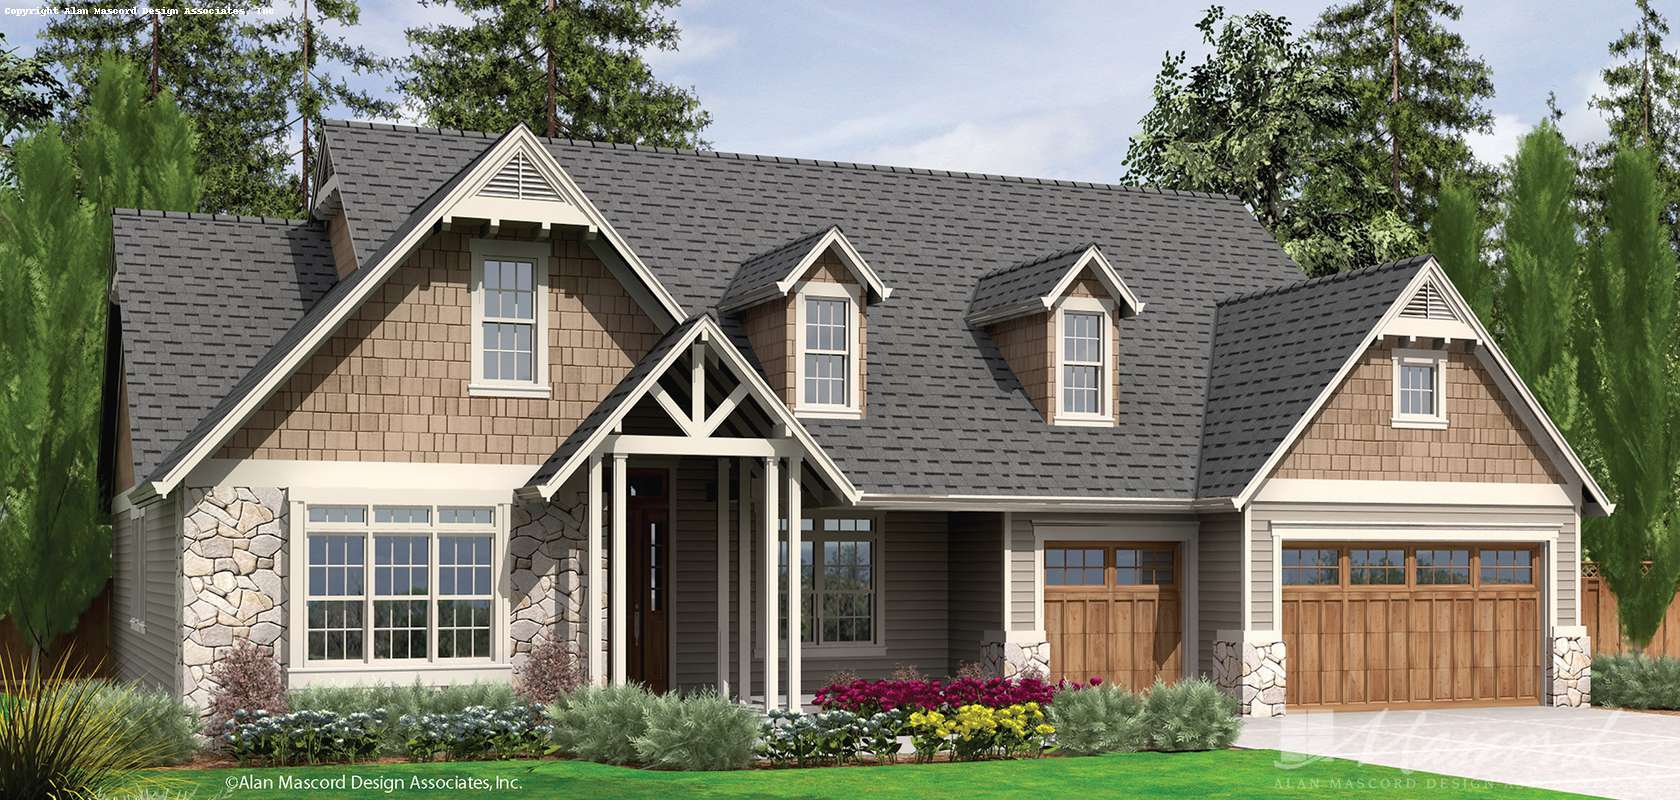 Mascord House Plan 22157: The Alton